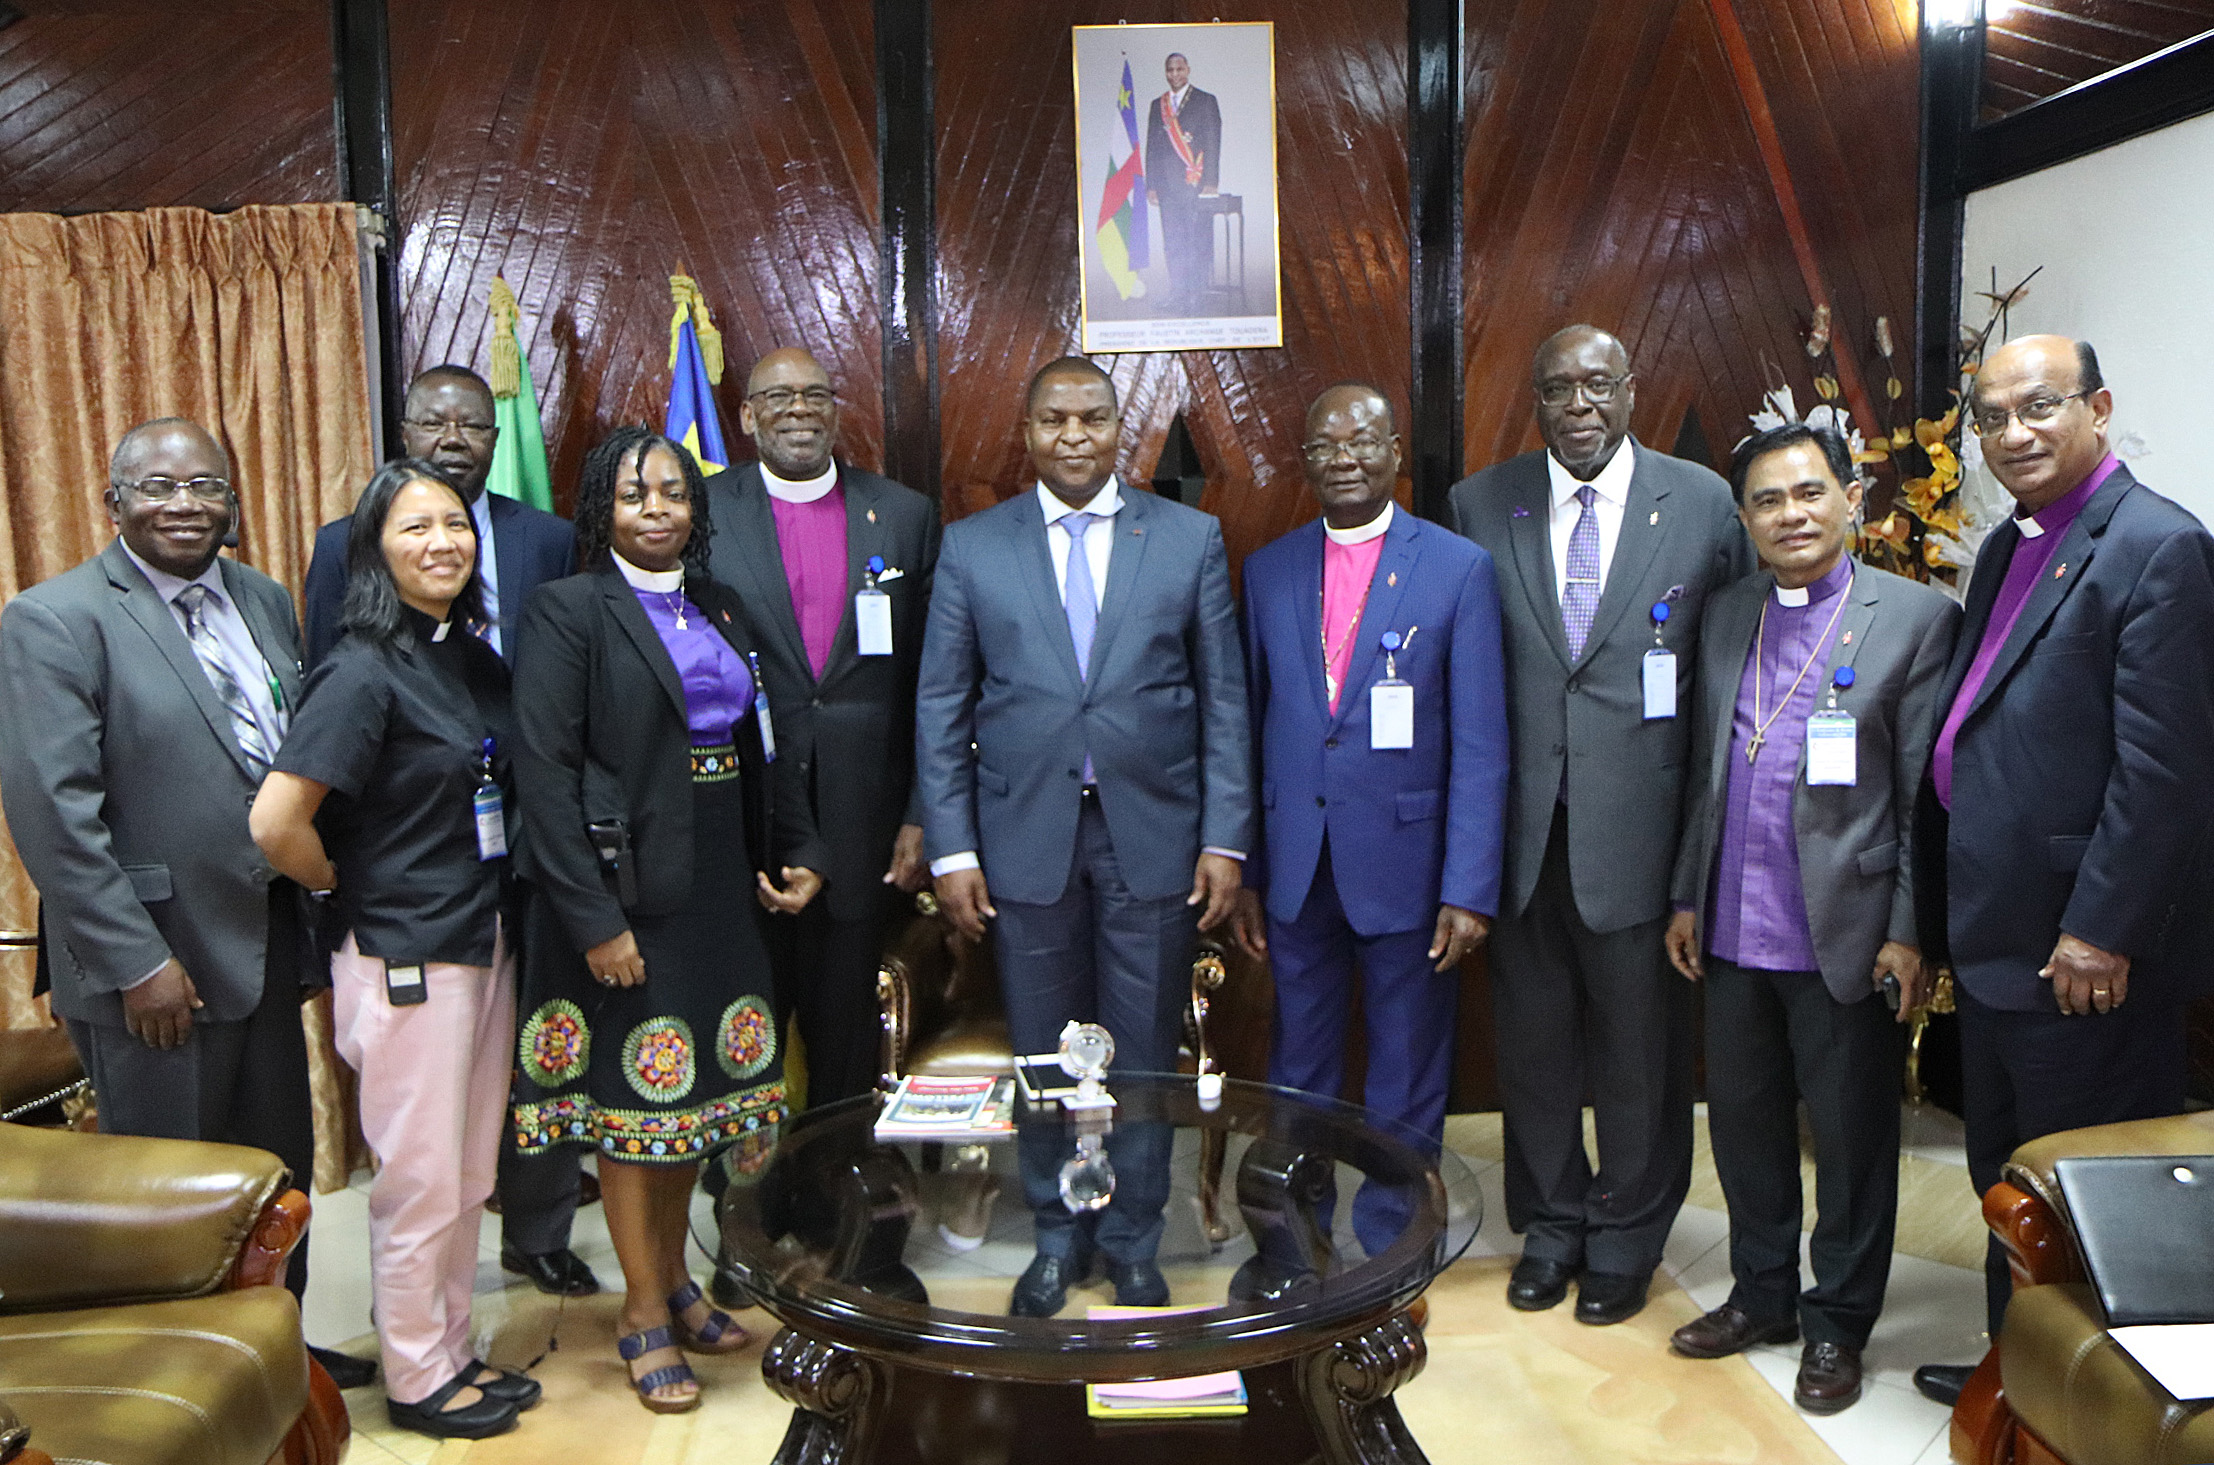 Members of The United Methodist Church Council of Bishops and Board of Global Ministries pose for a photo with Central Africa Republic President Faustin-Archange Touadéra in Bangui, Central Africa Republic. The delegation visited the country and Kenya Nov. 12-18. Photo by Isaac Broune, UMNS.